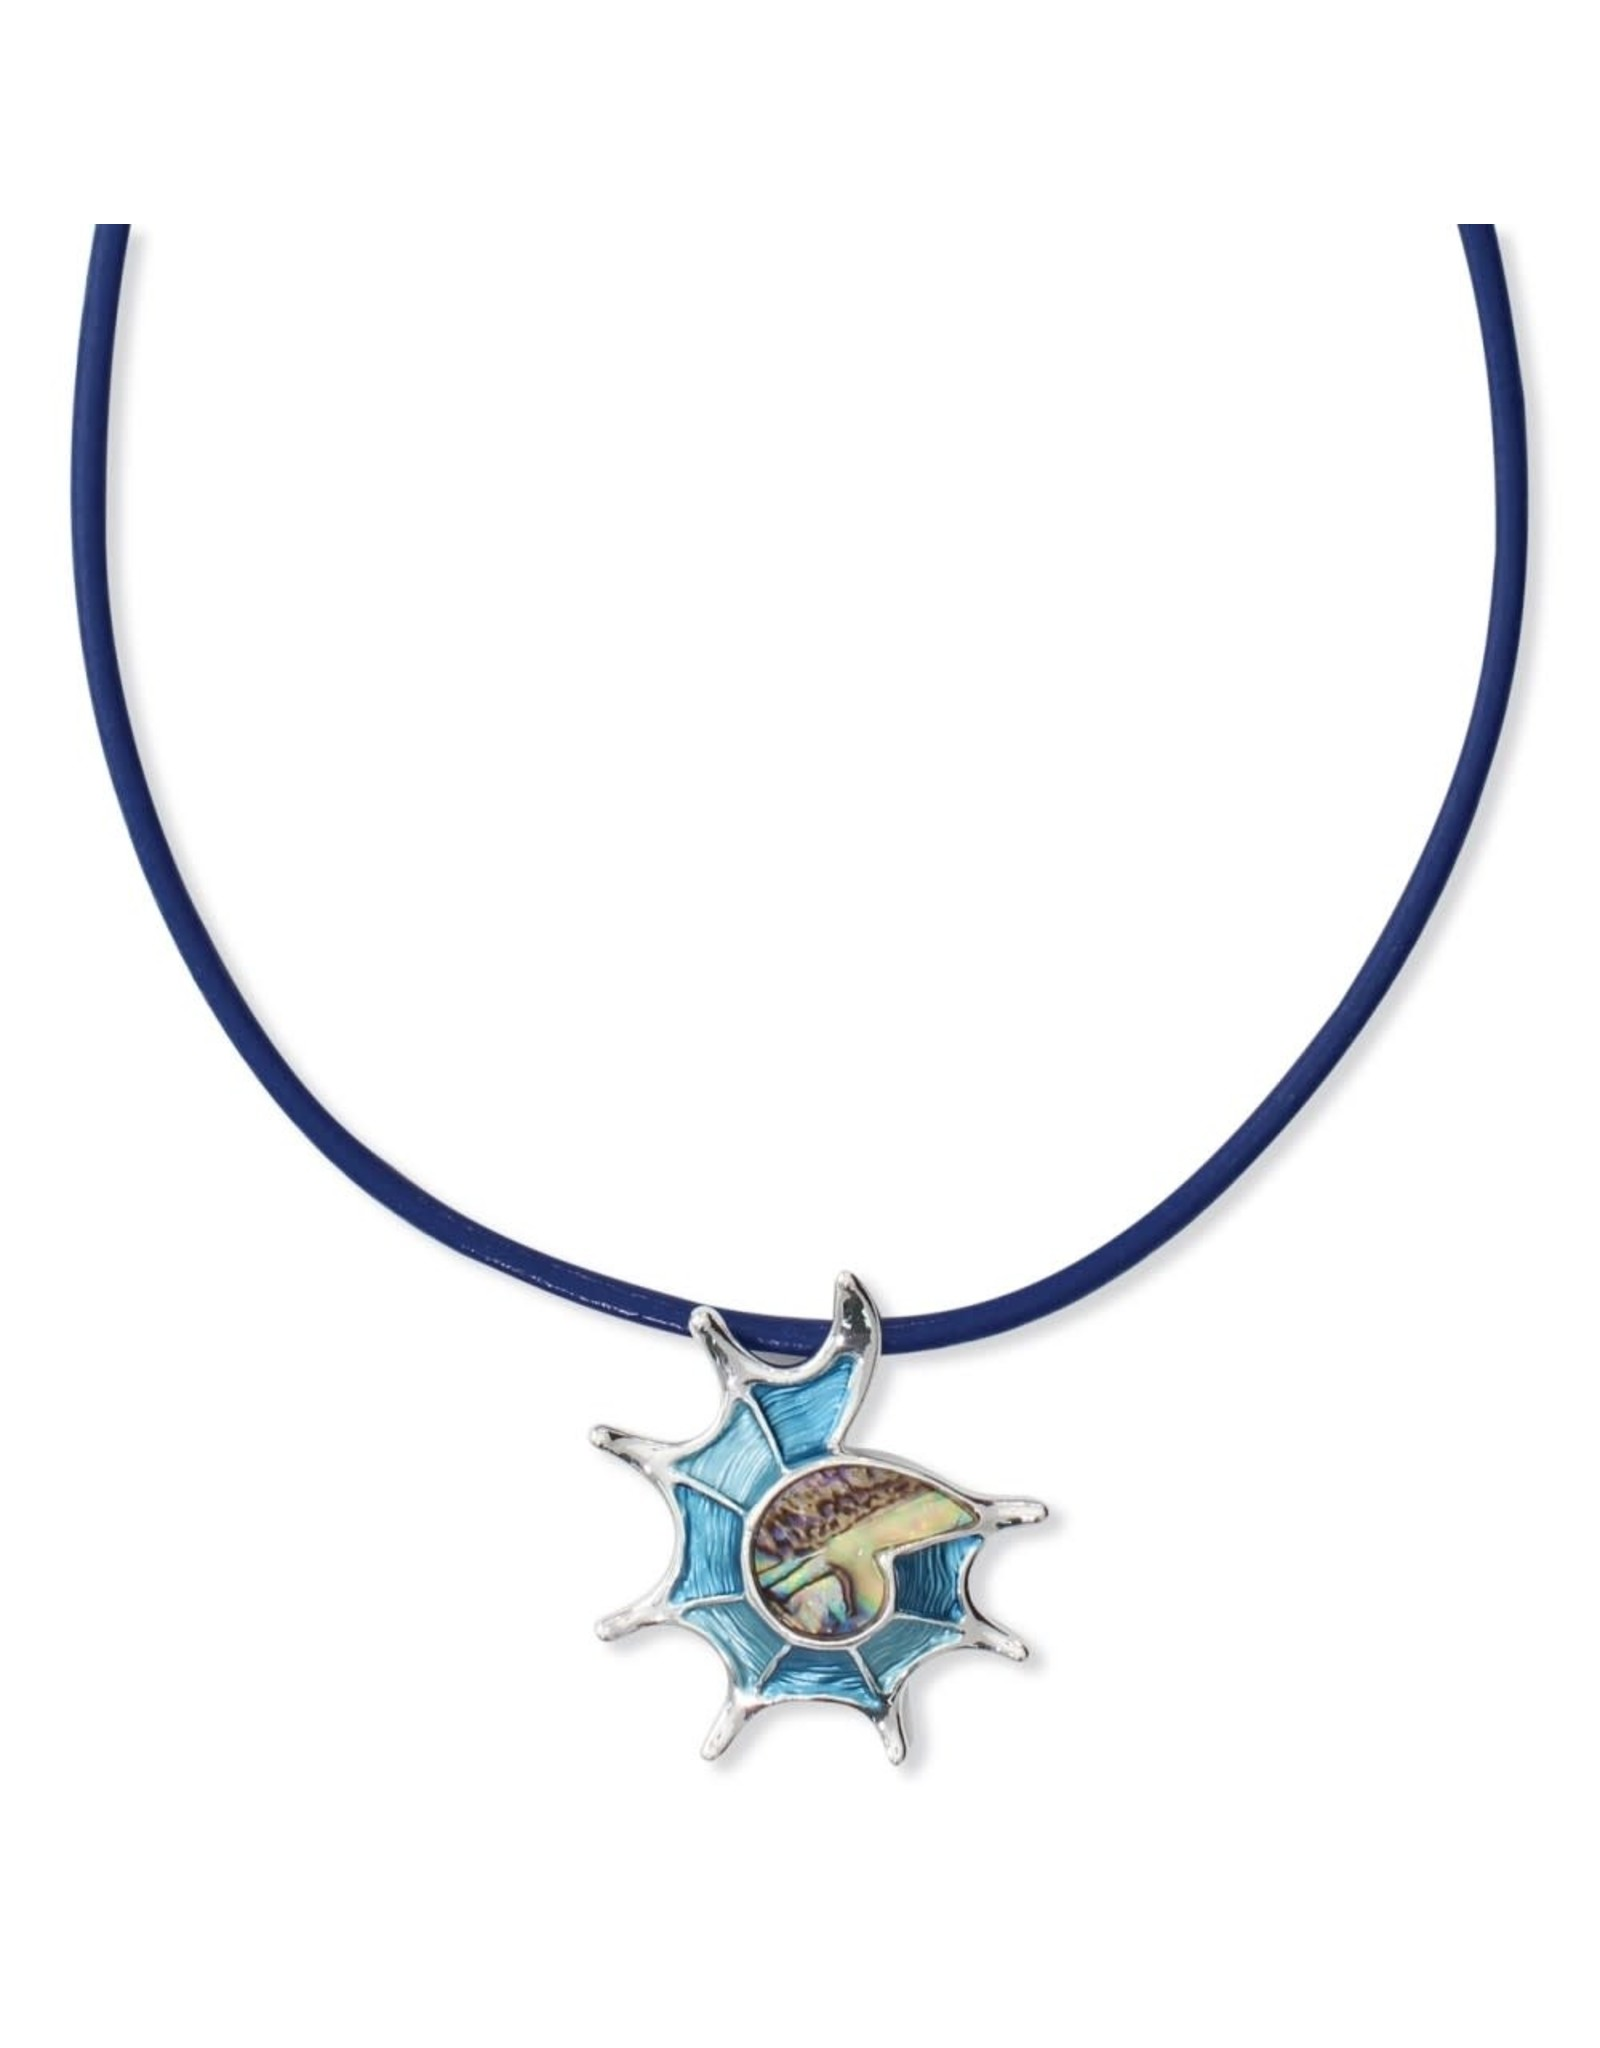 Periwinkle by Barlow 16 Inch Abalone Conch Shell Blue Cord Necklace